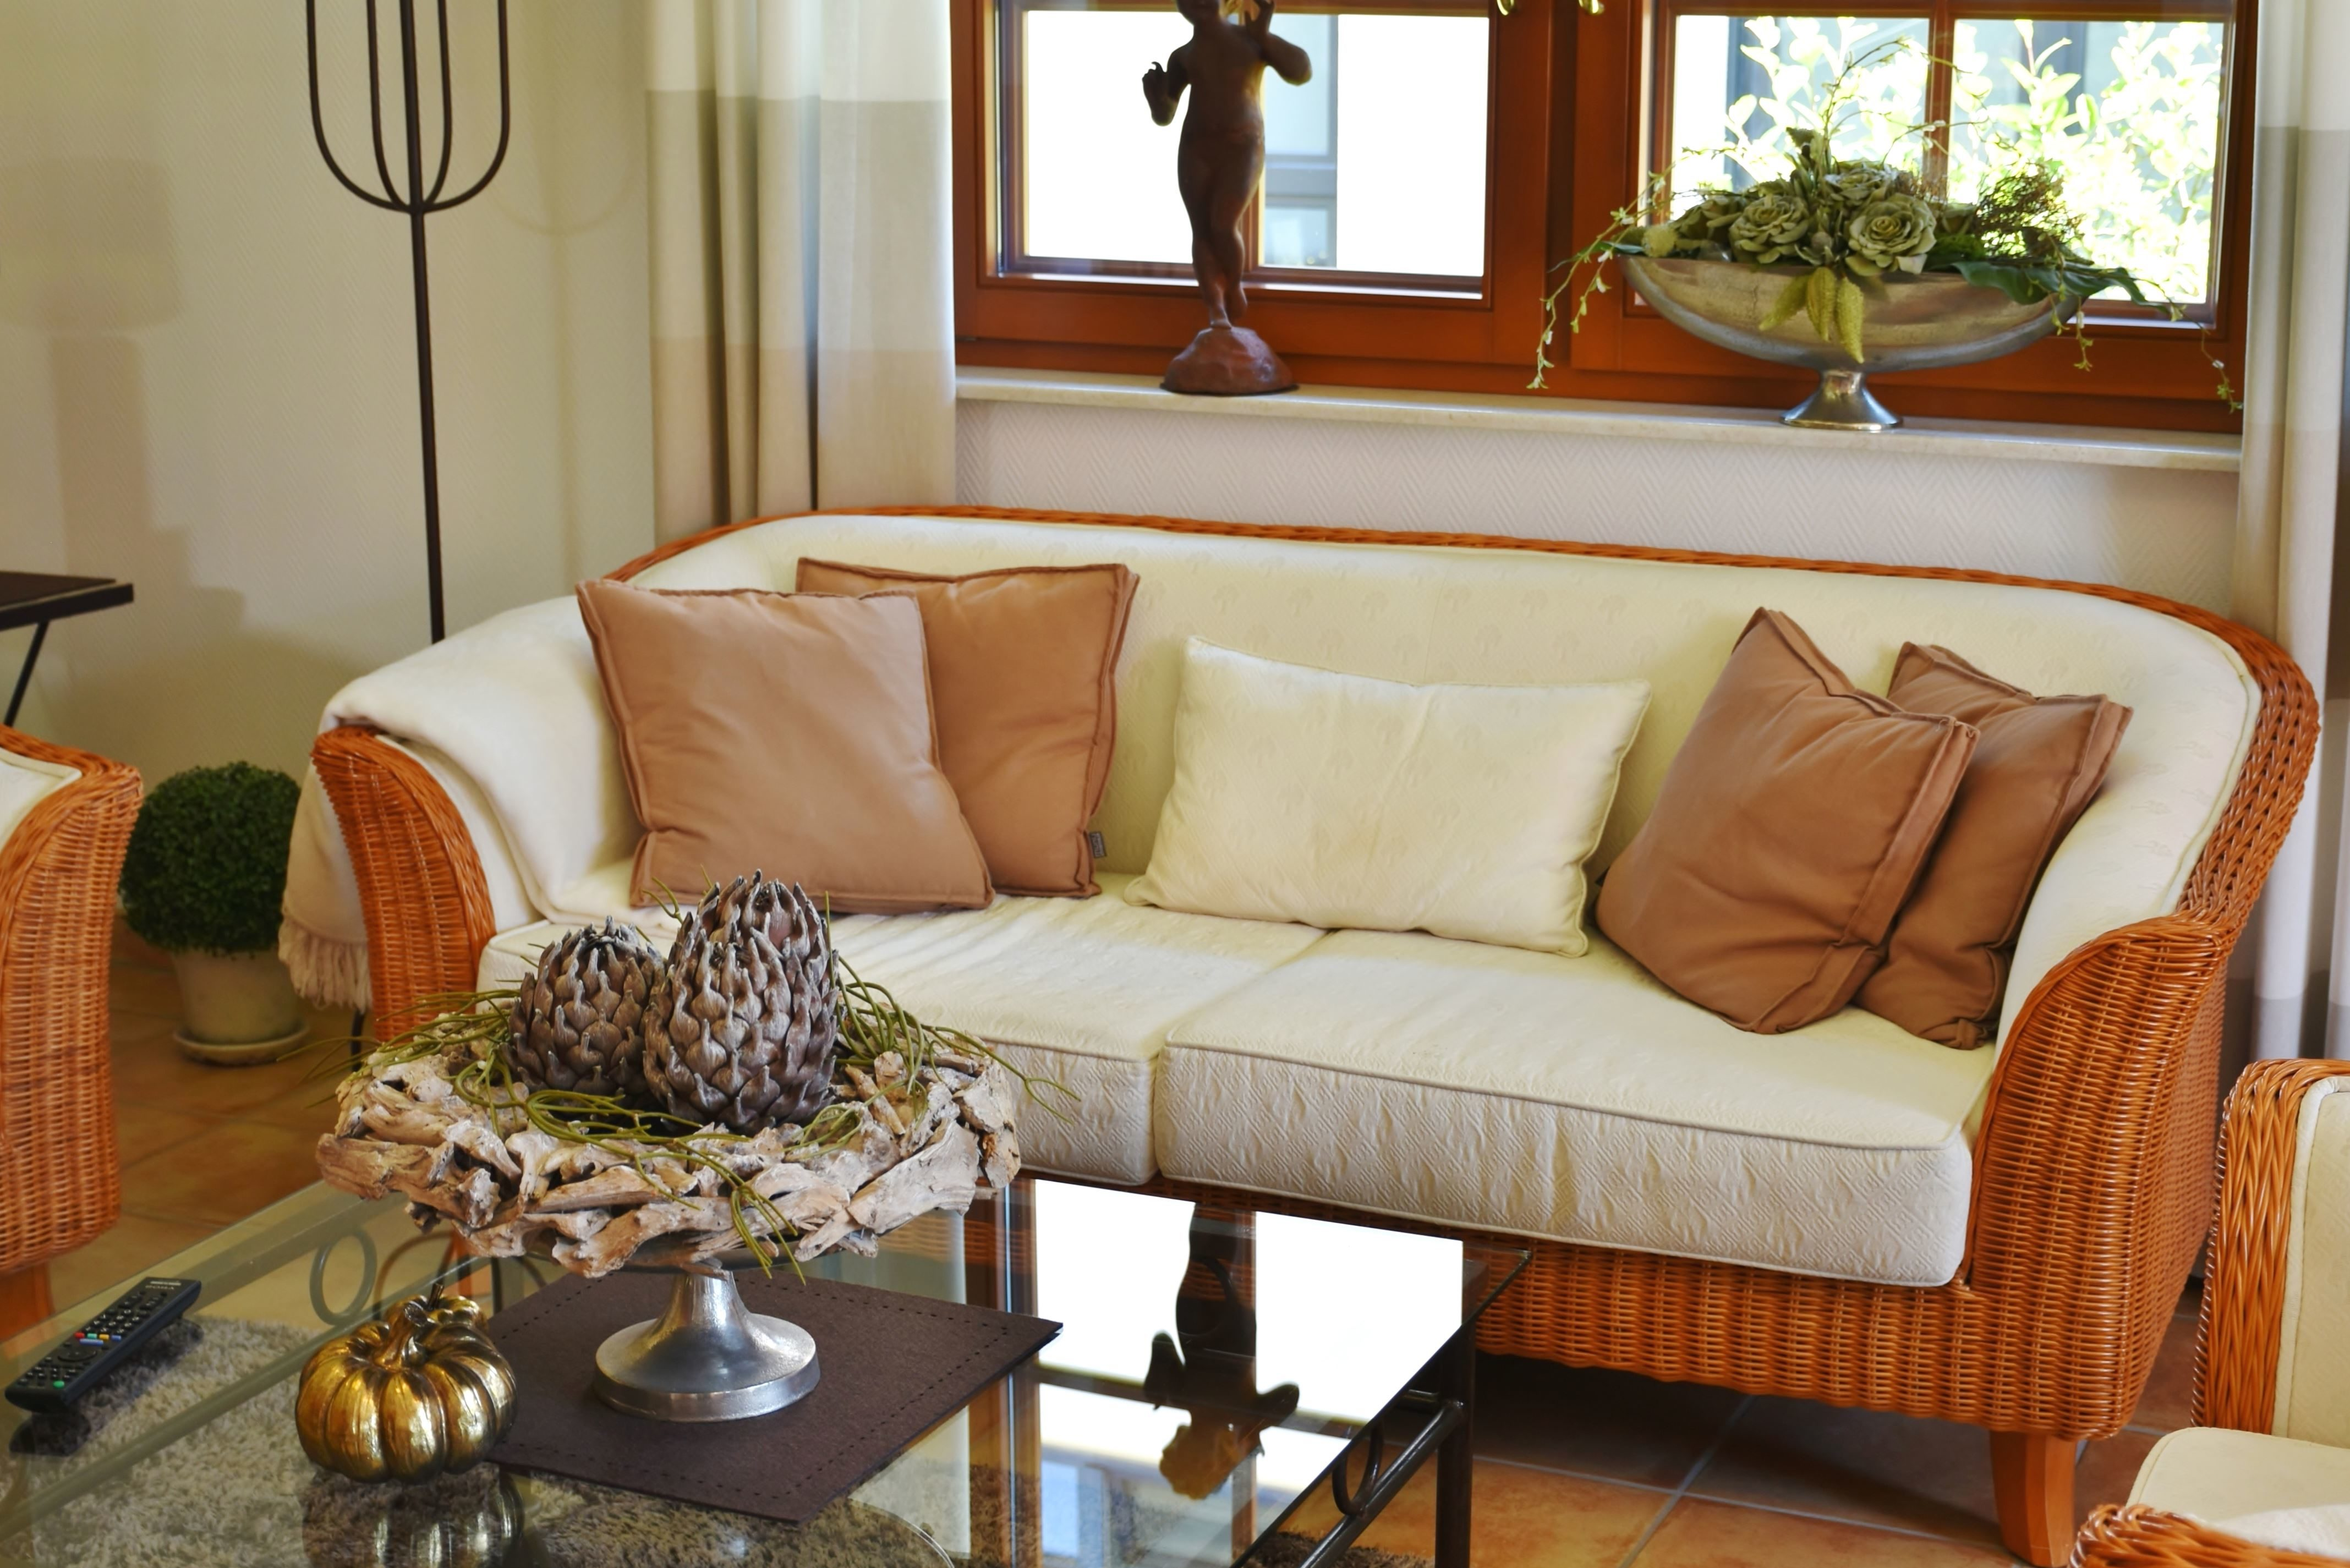 Free picture room sofa table window chair cushion furniture